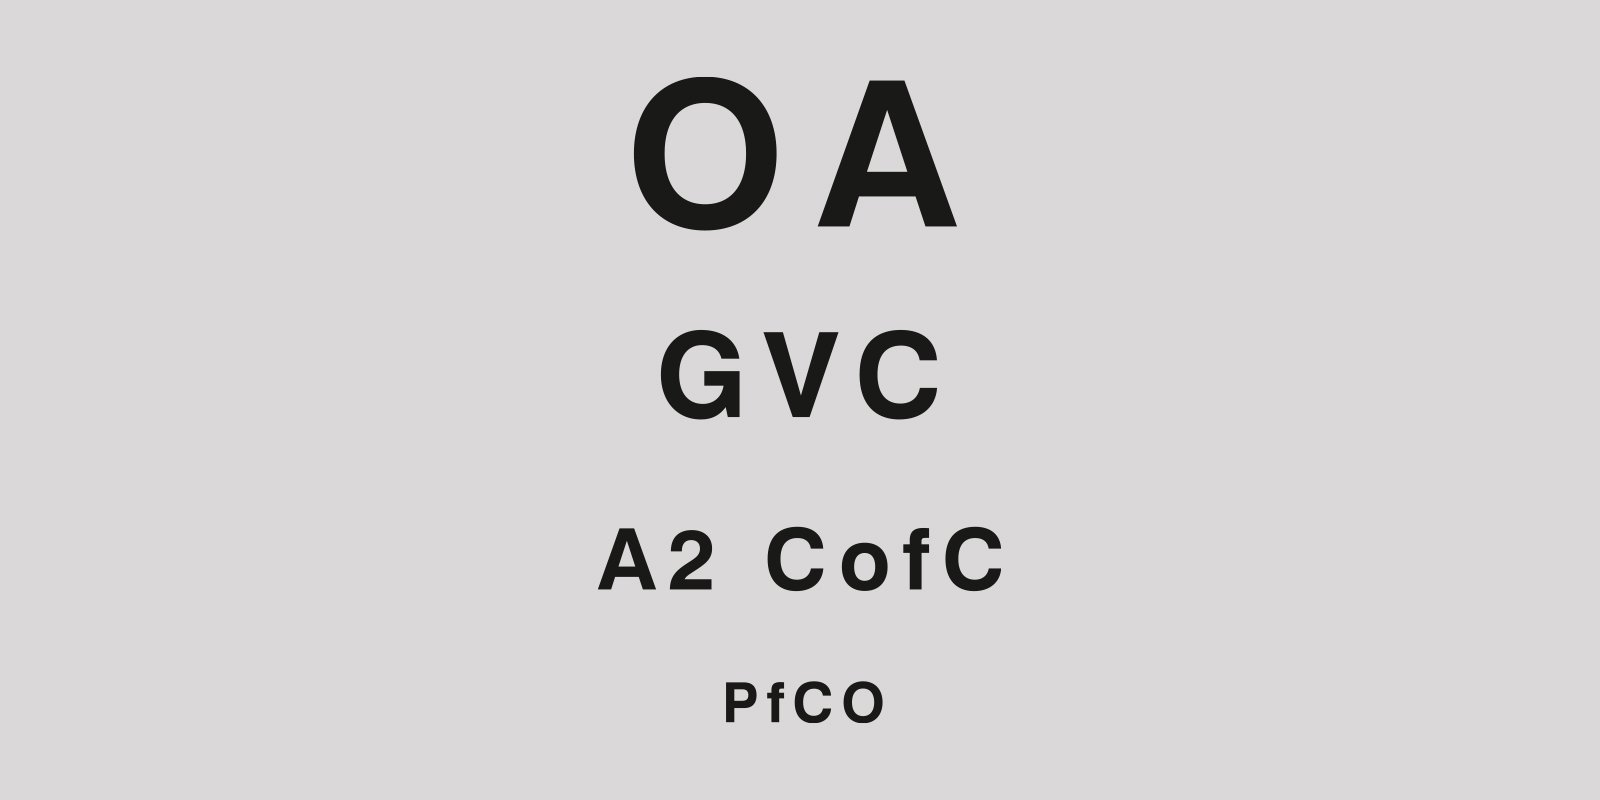 PfCO OA A2 CofC GVC CAA certification and authorisations